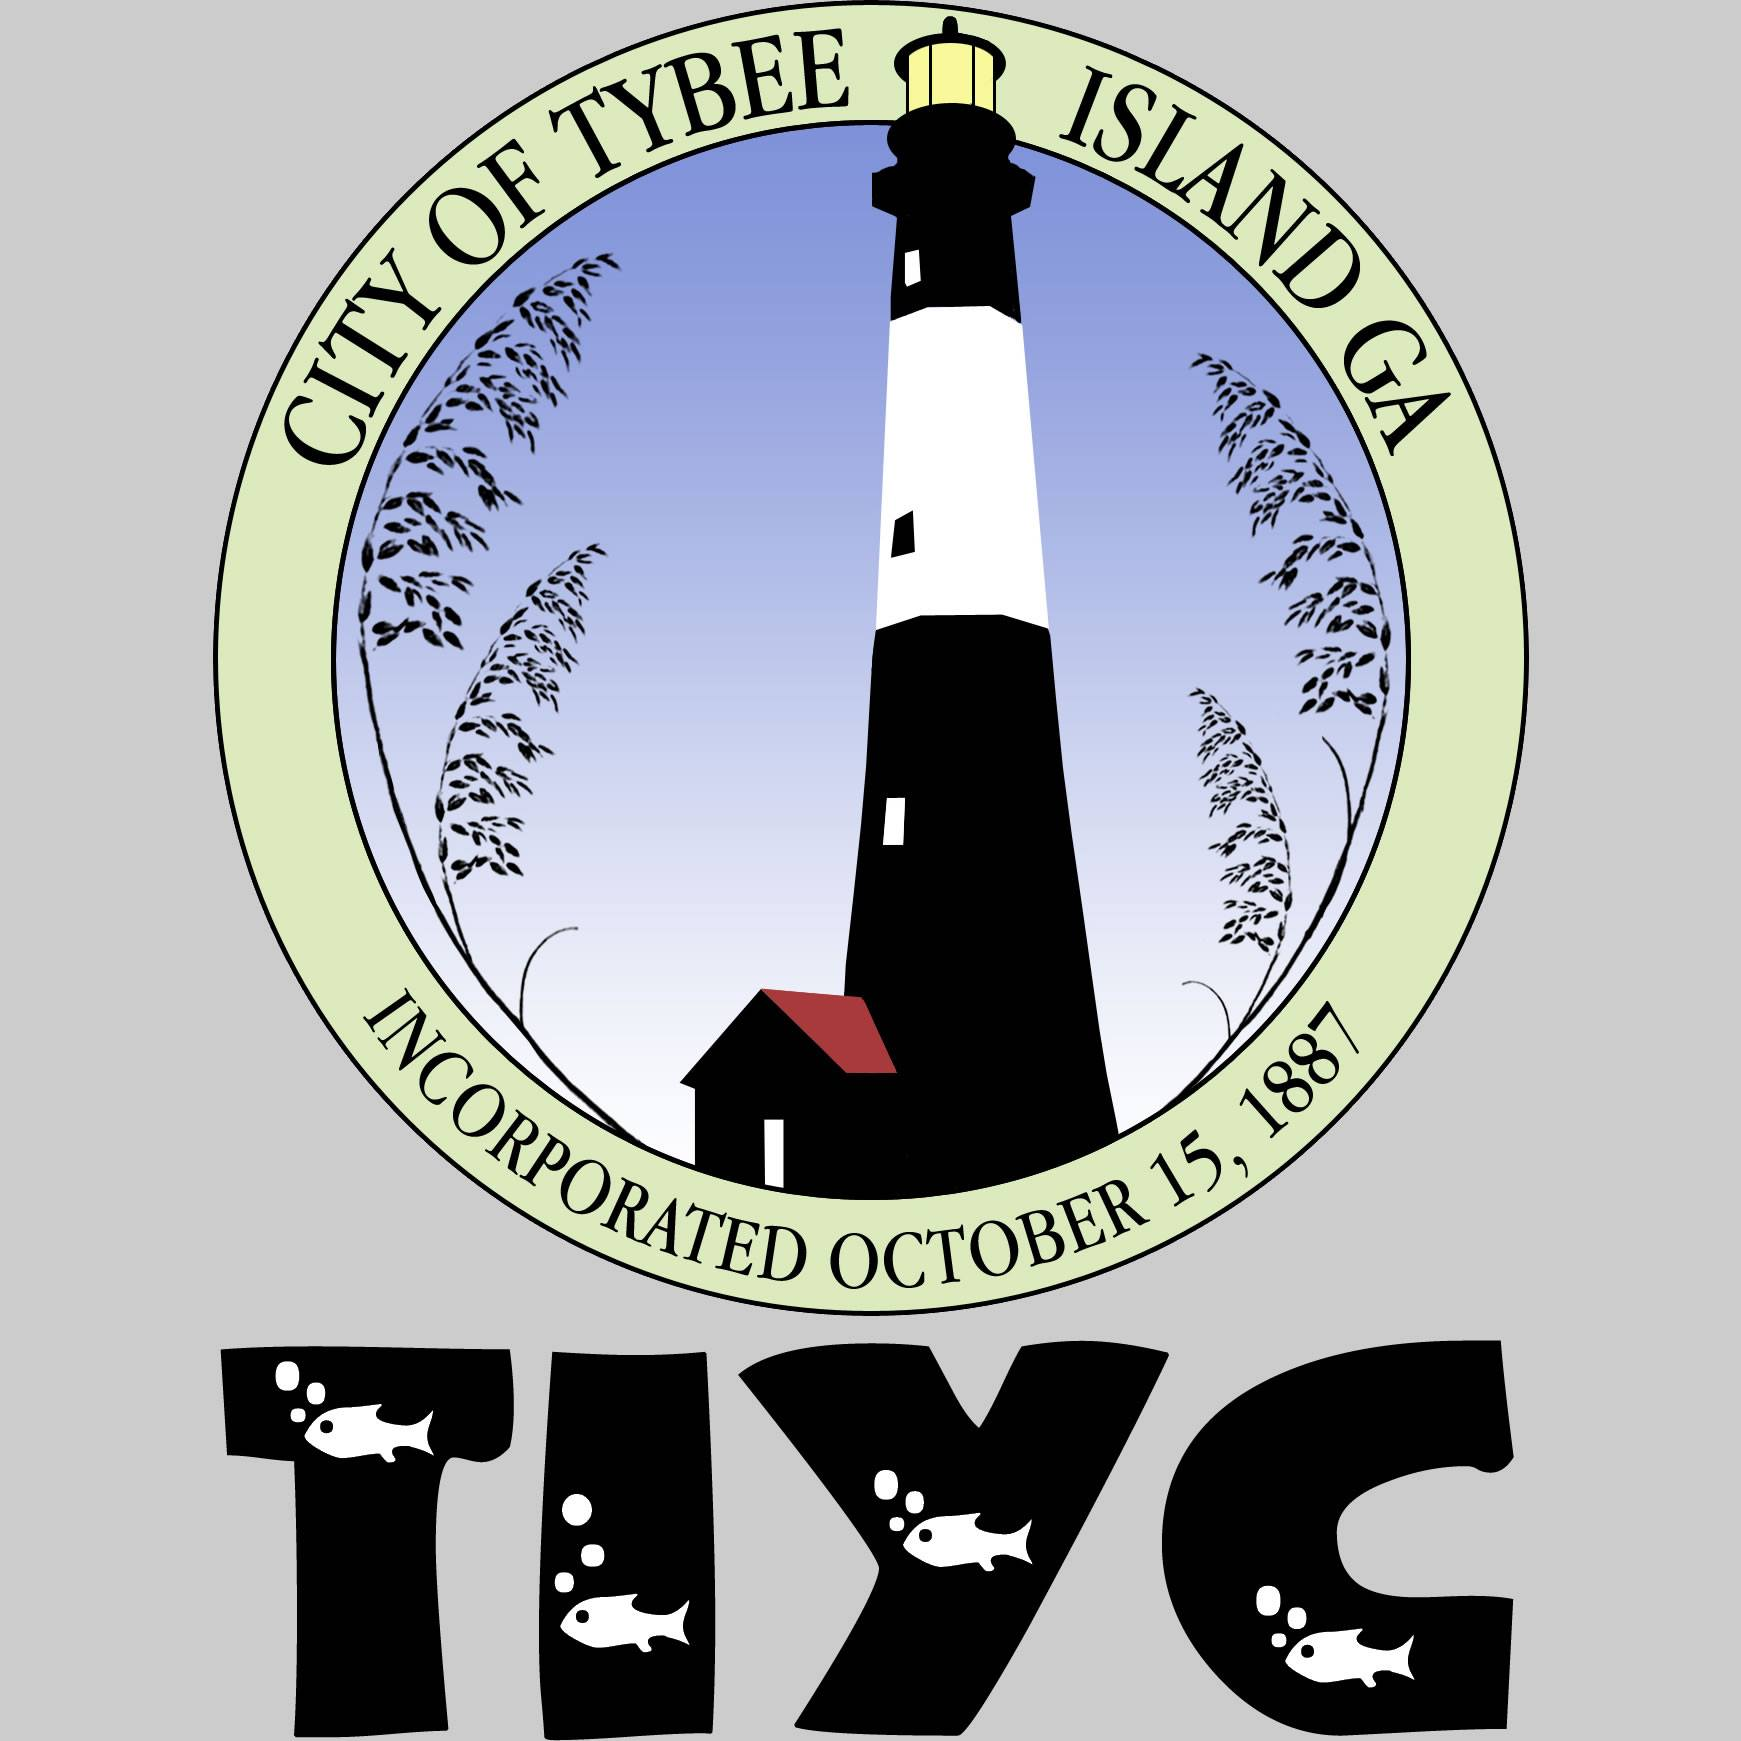 Tybee Island Youth Counsel